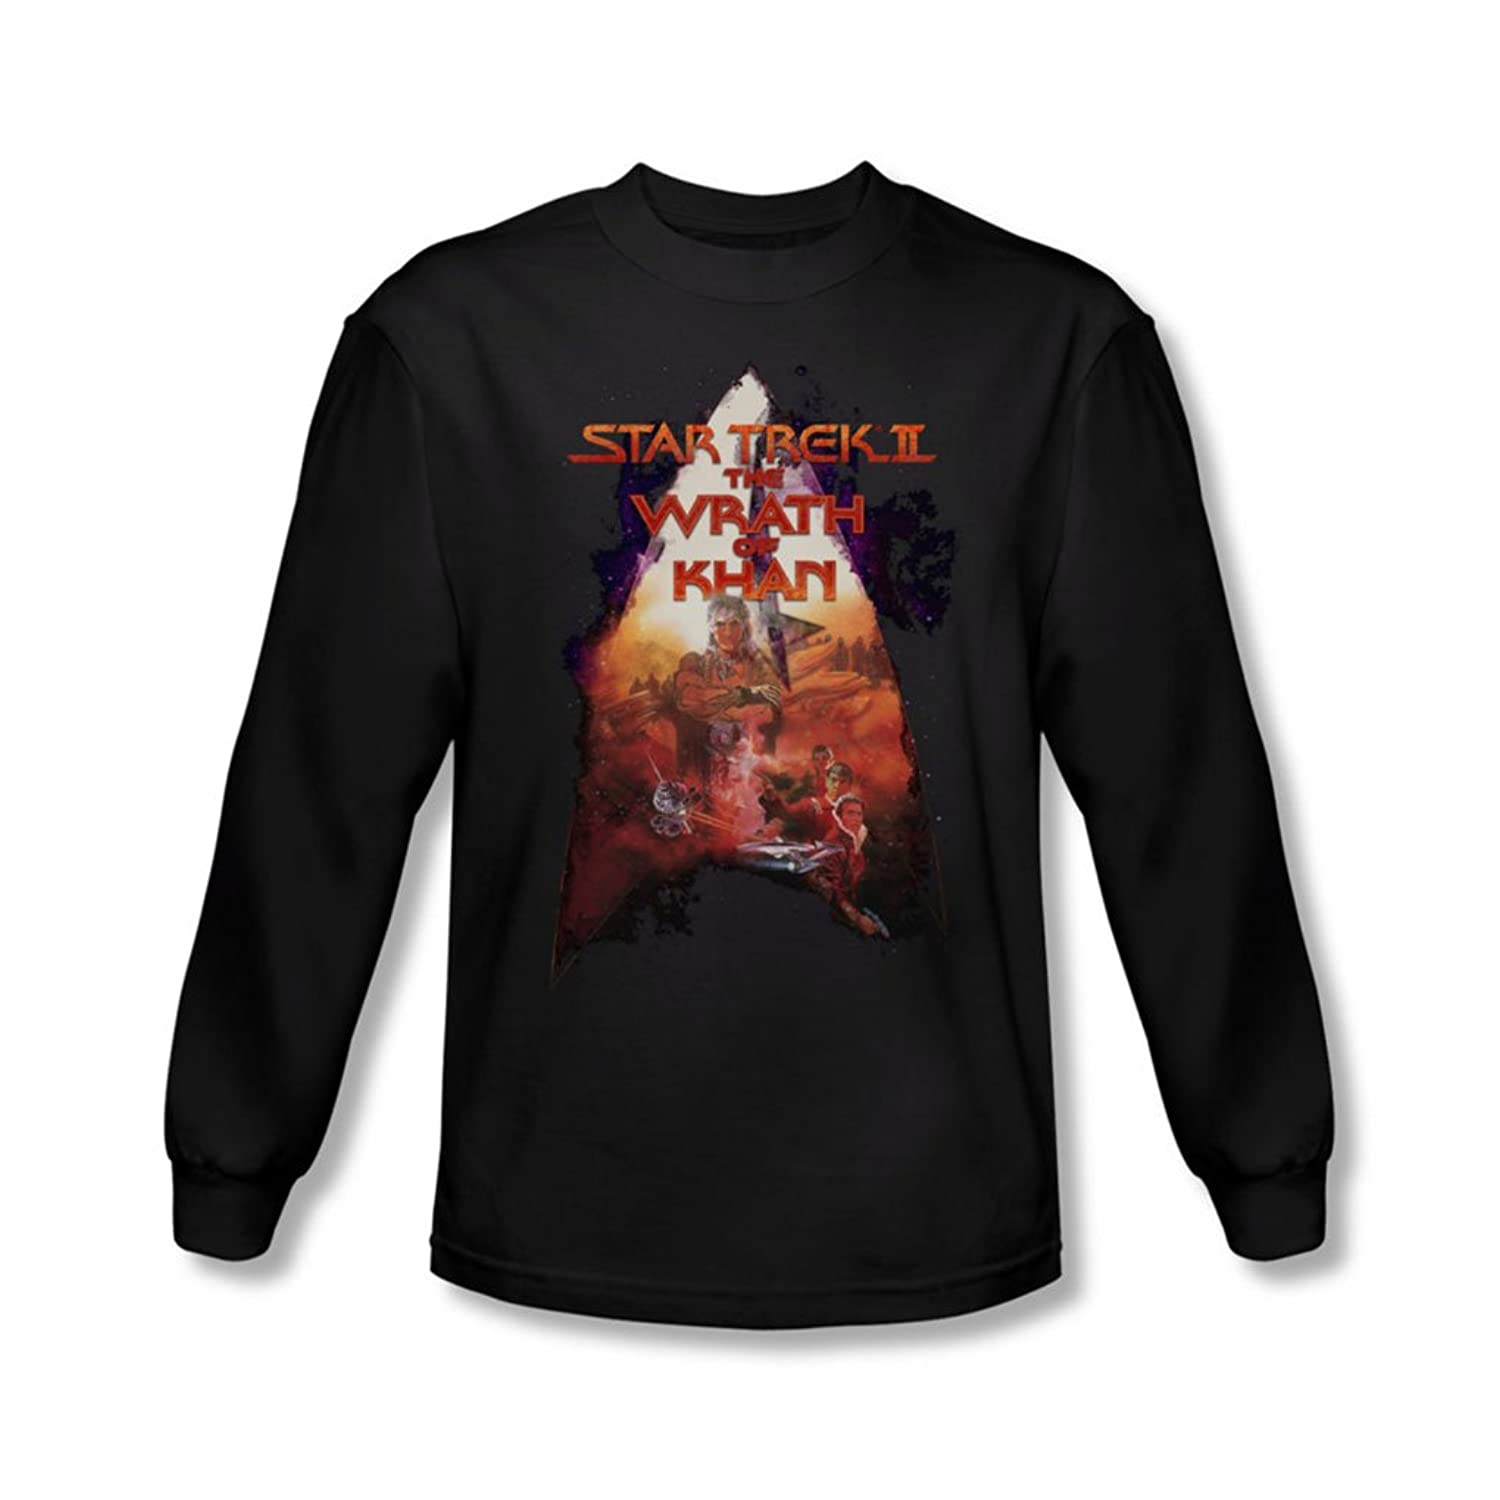 Star Trek - Mens Twok Poster Long Sleeve Shirt In Black